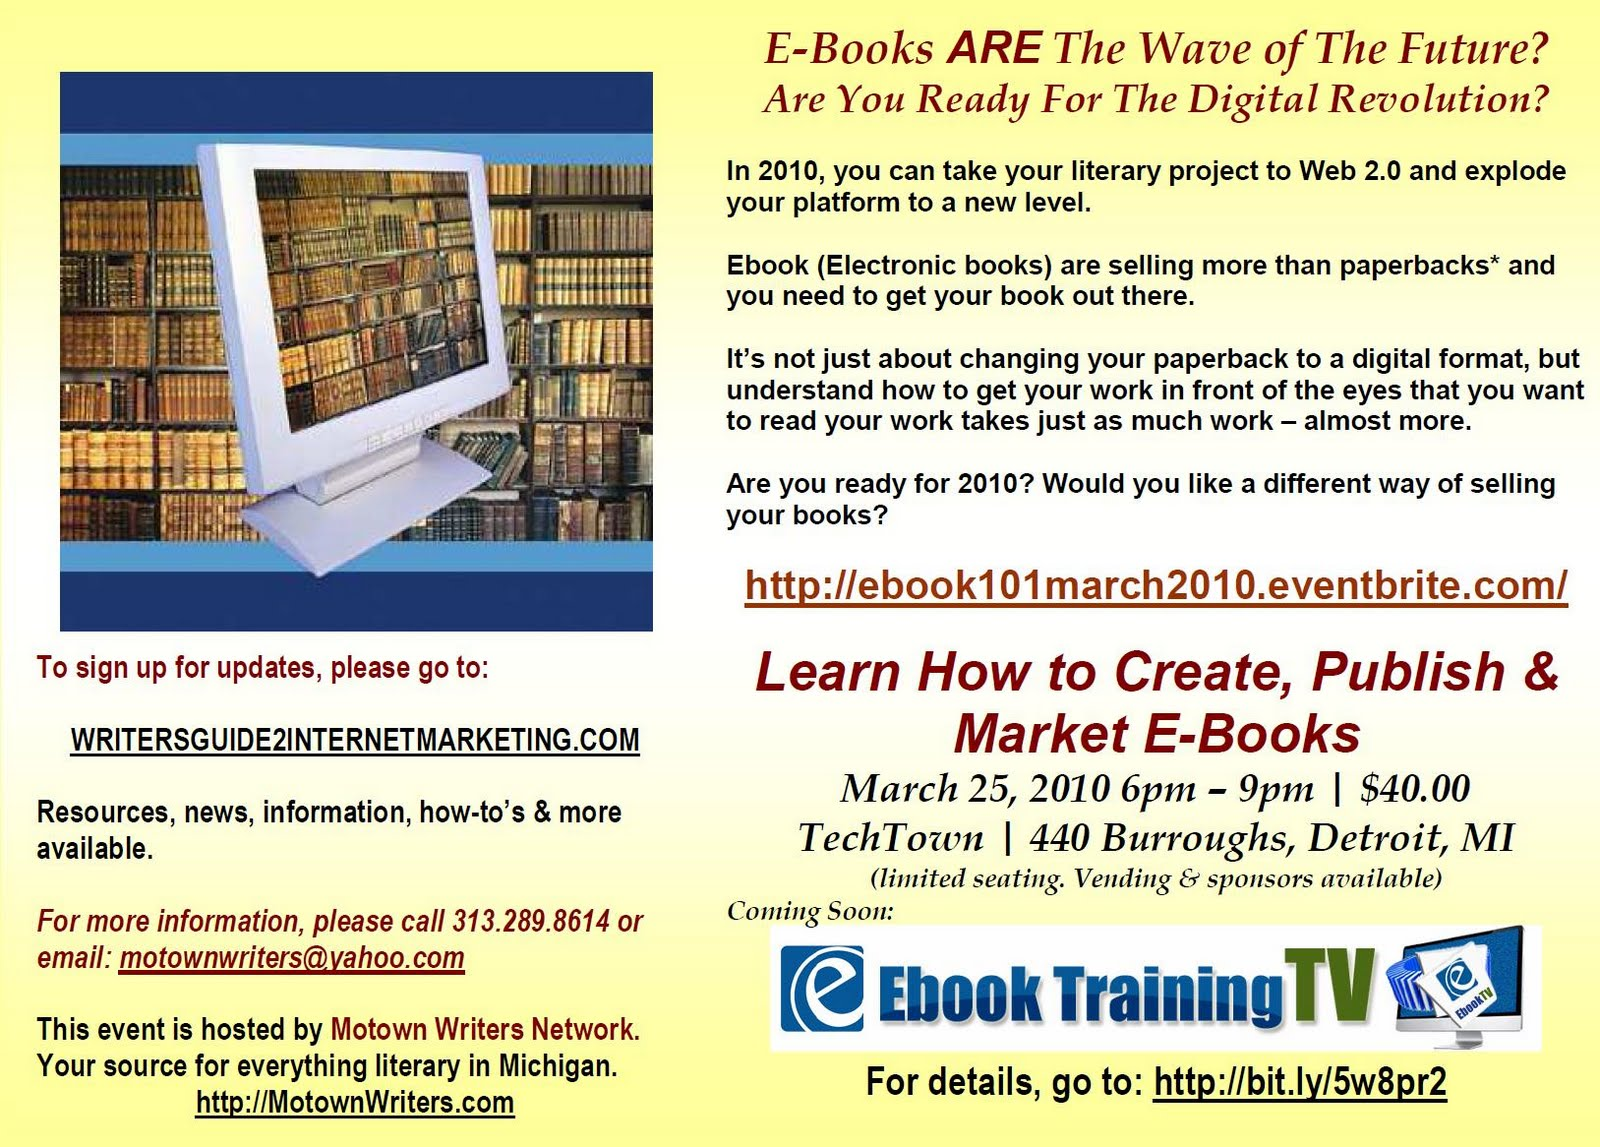 ebookworkshop-789574.JPG